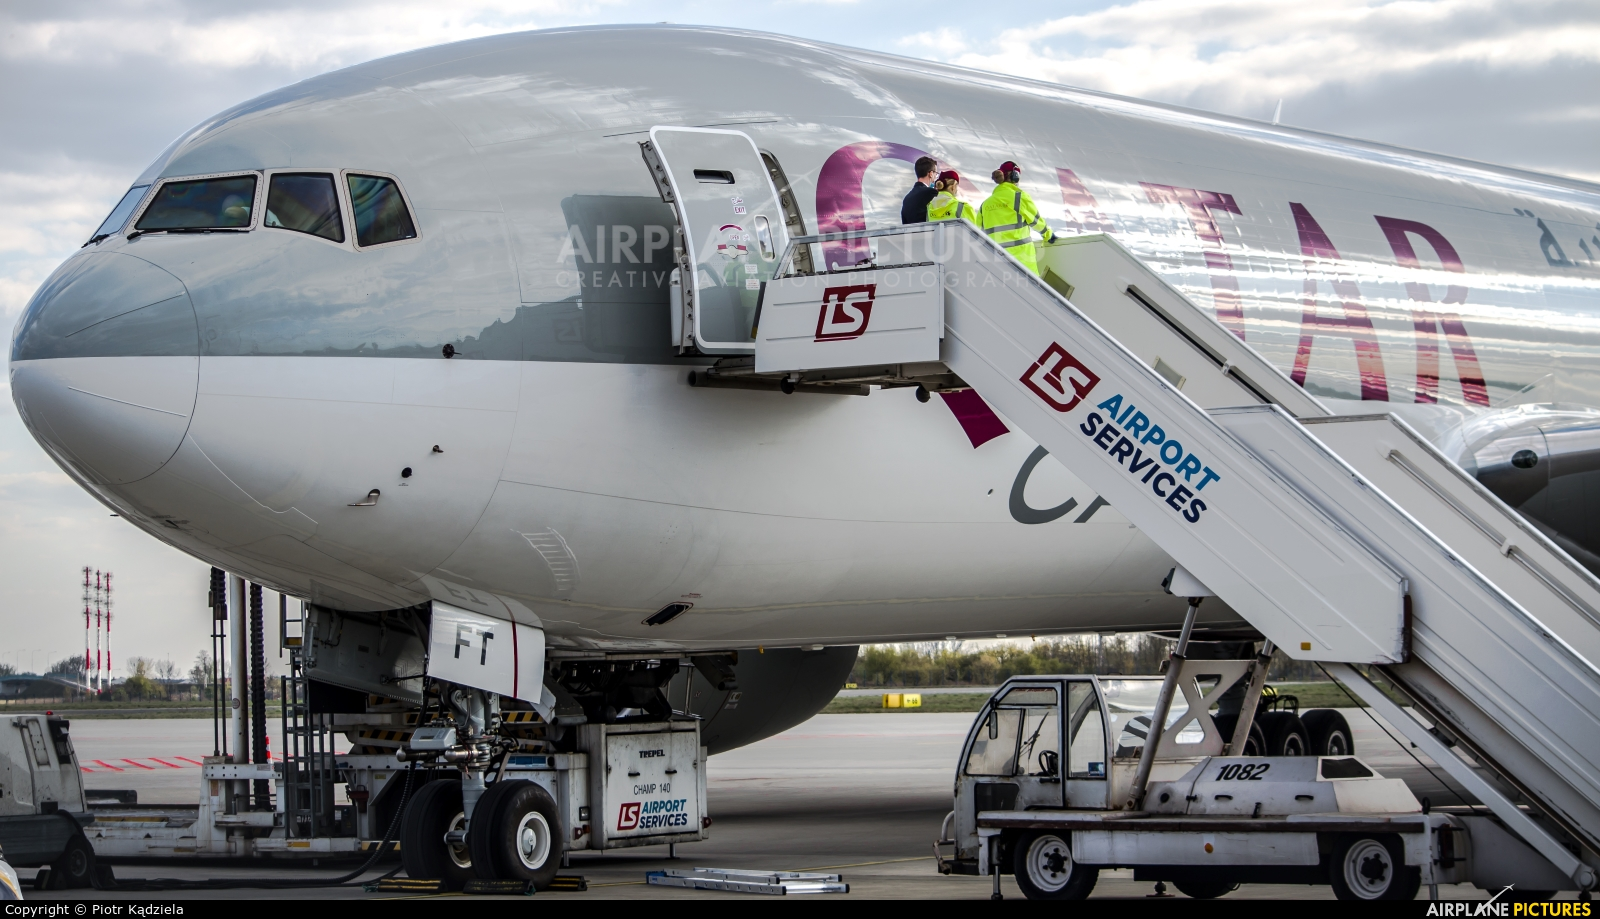 Qatar Airways Cargo A7-BFT aircraft at Warsaw - Frederic Chopin